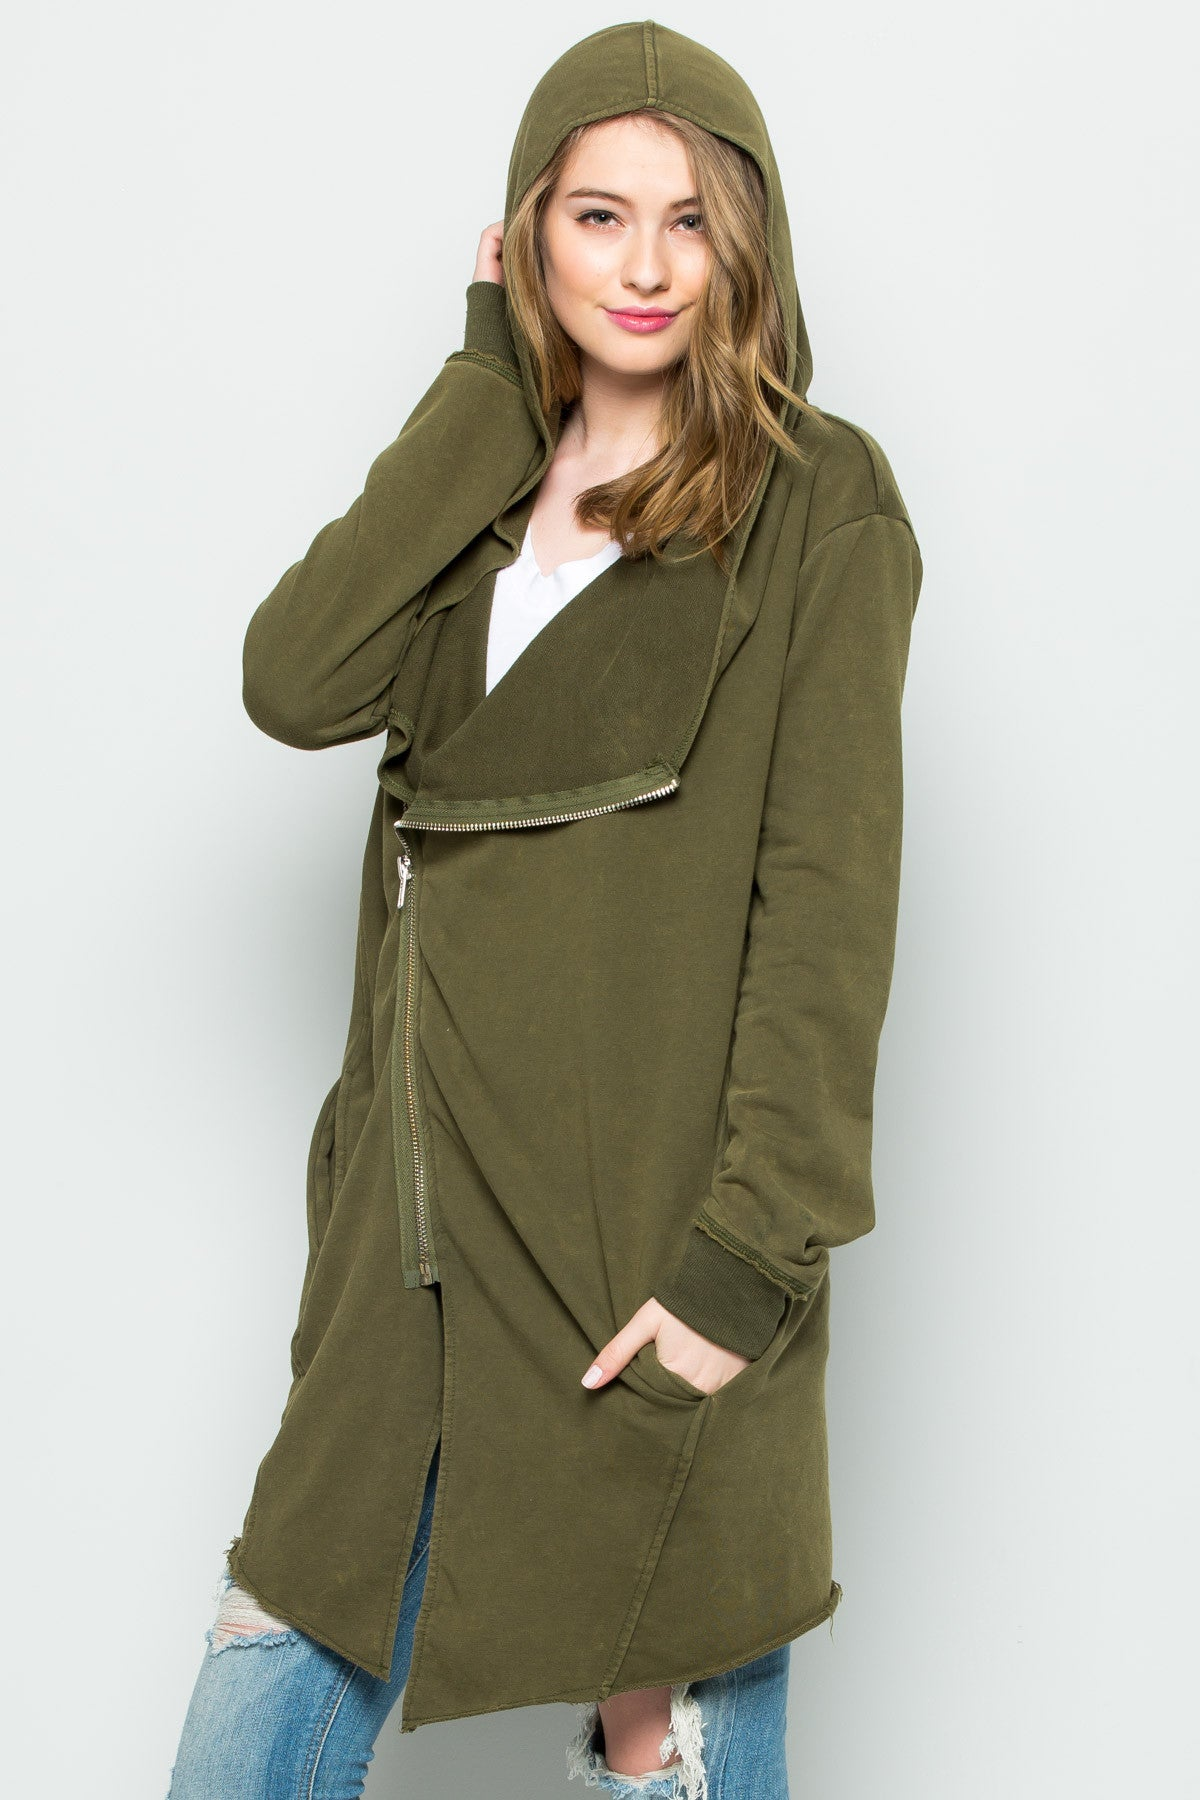 Hooded Asymmetric Zip Up Acid Wash Jacket in Military Green - Jacket - My Yuccie - 9